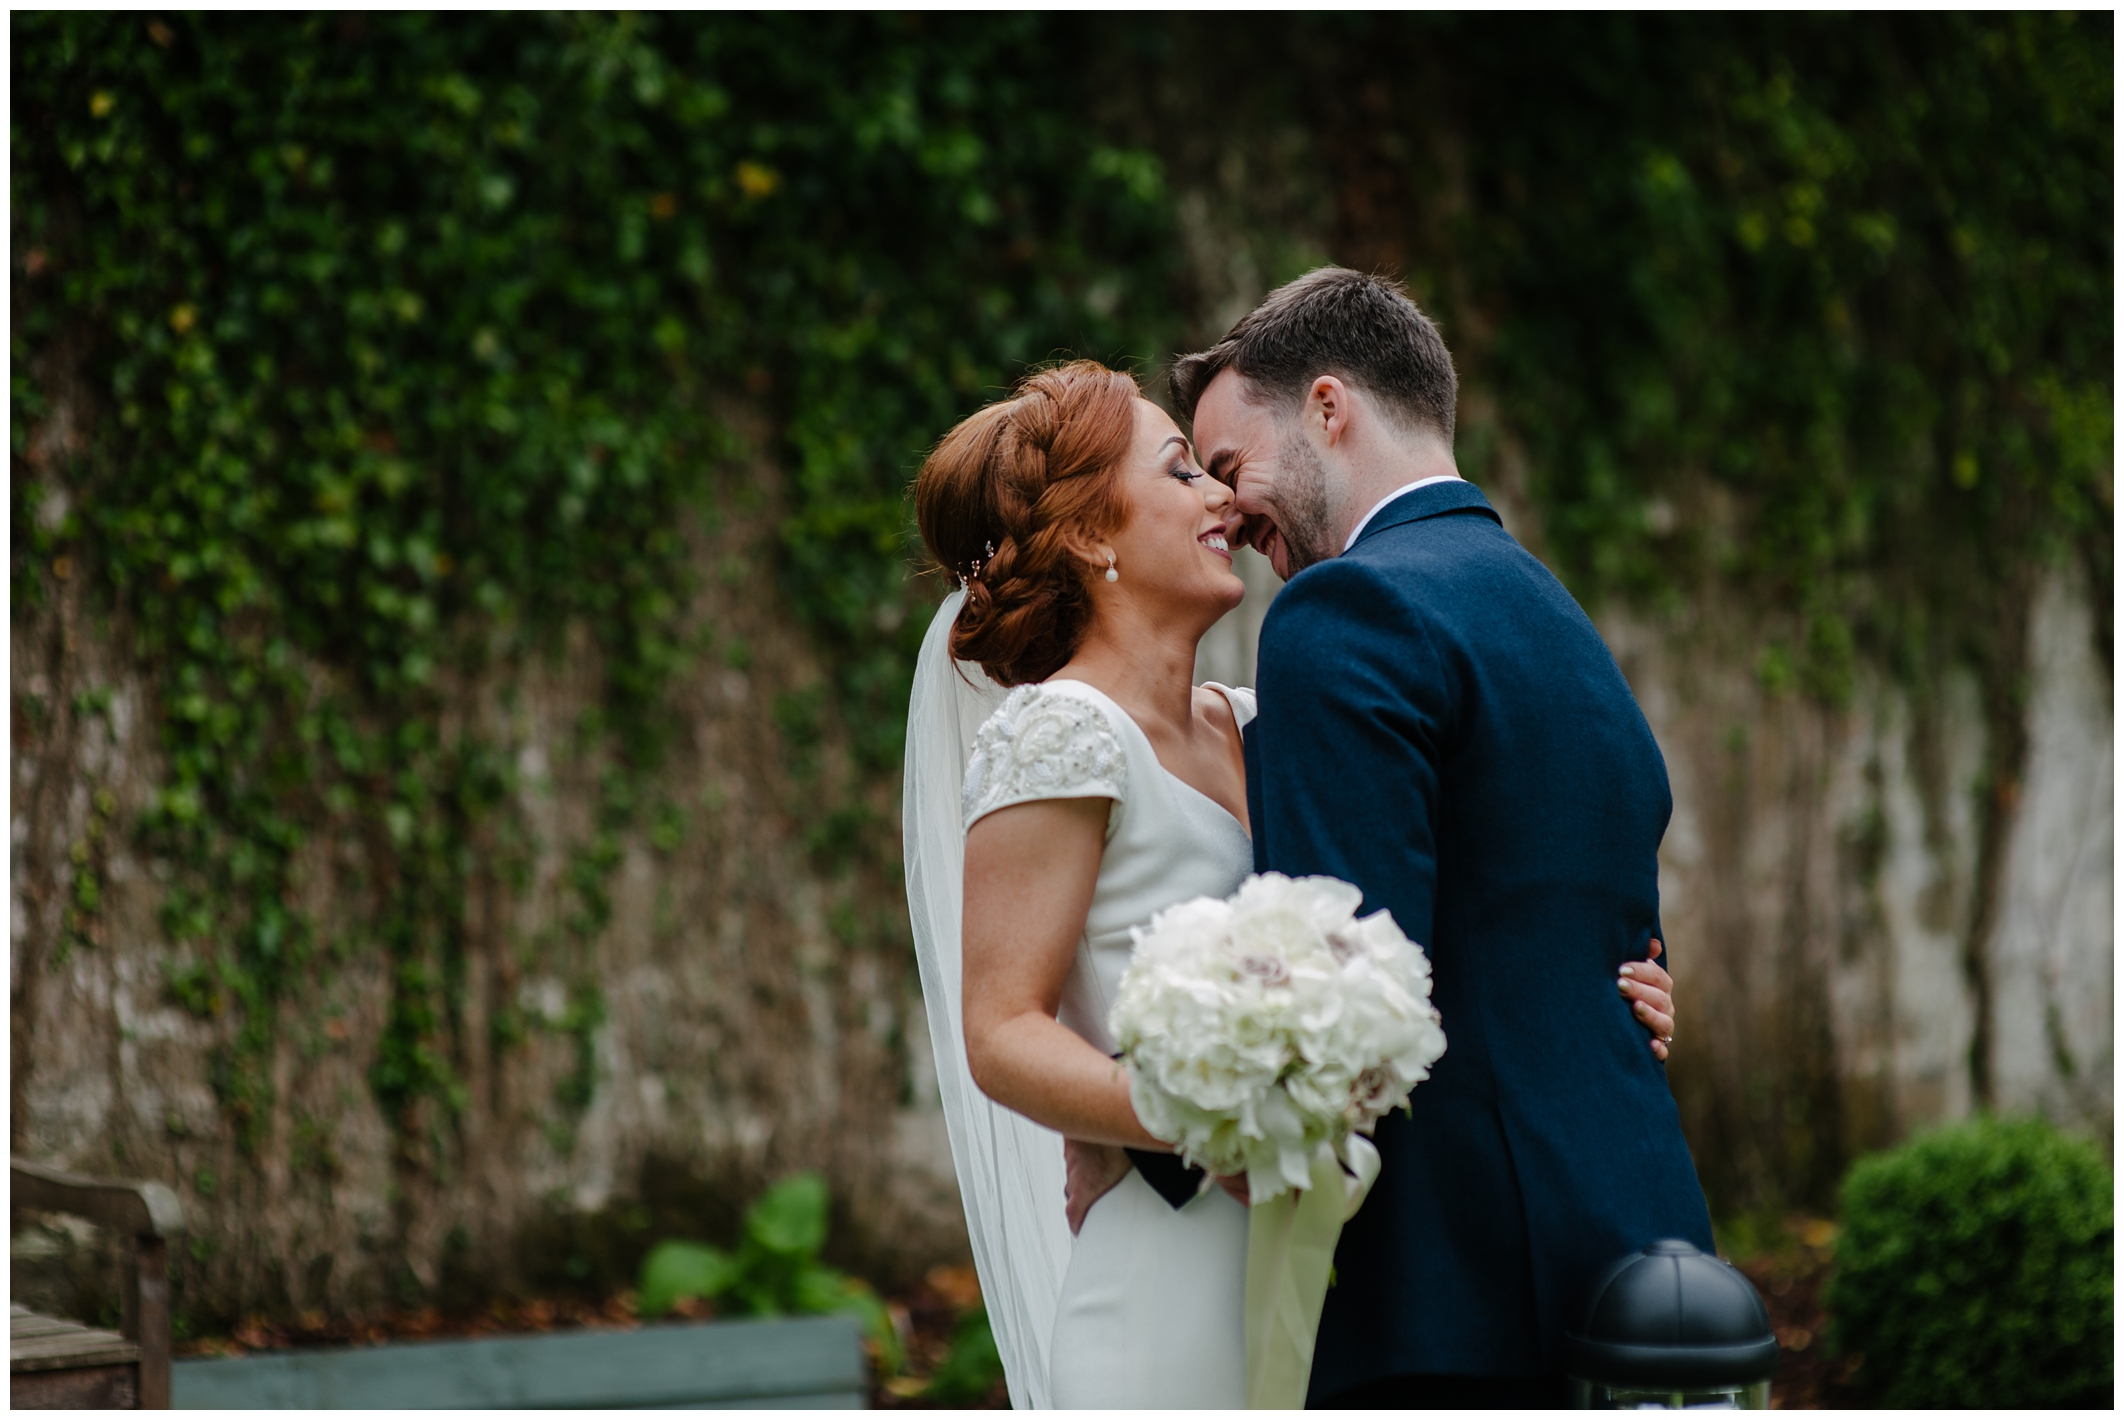 sinead_emmet_farnham_estate_wedding_jude_browne_photography_0109.jpg